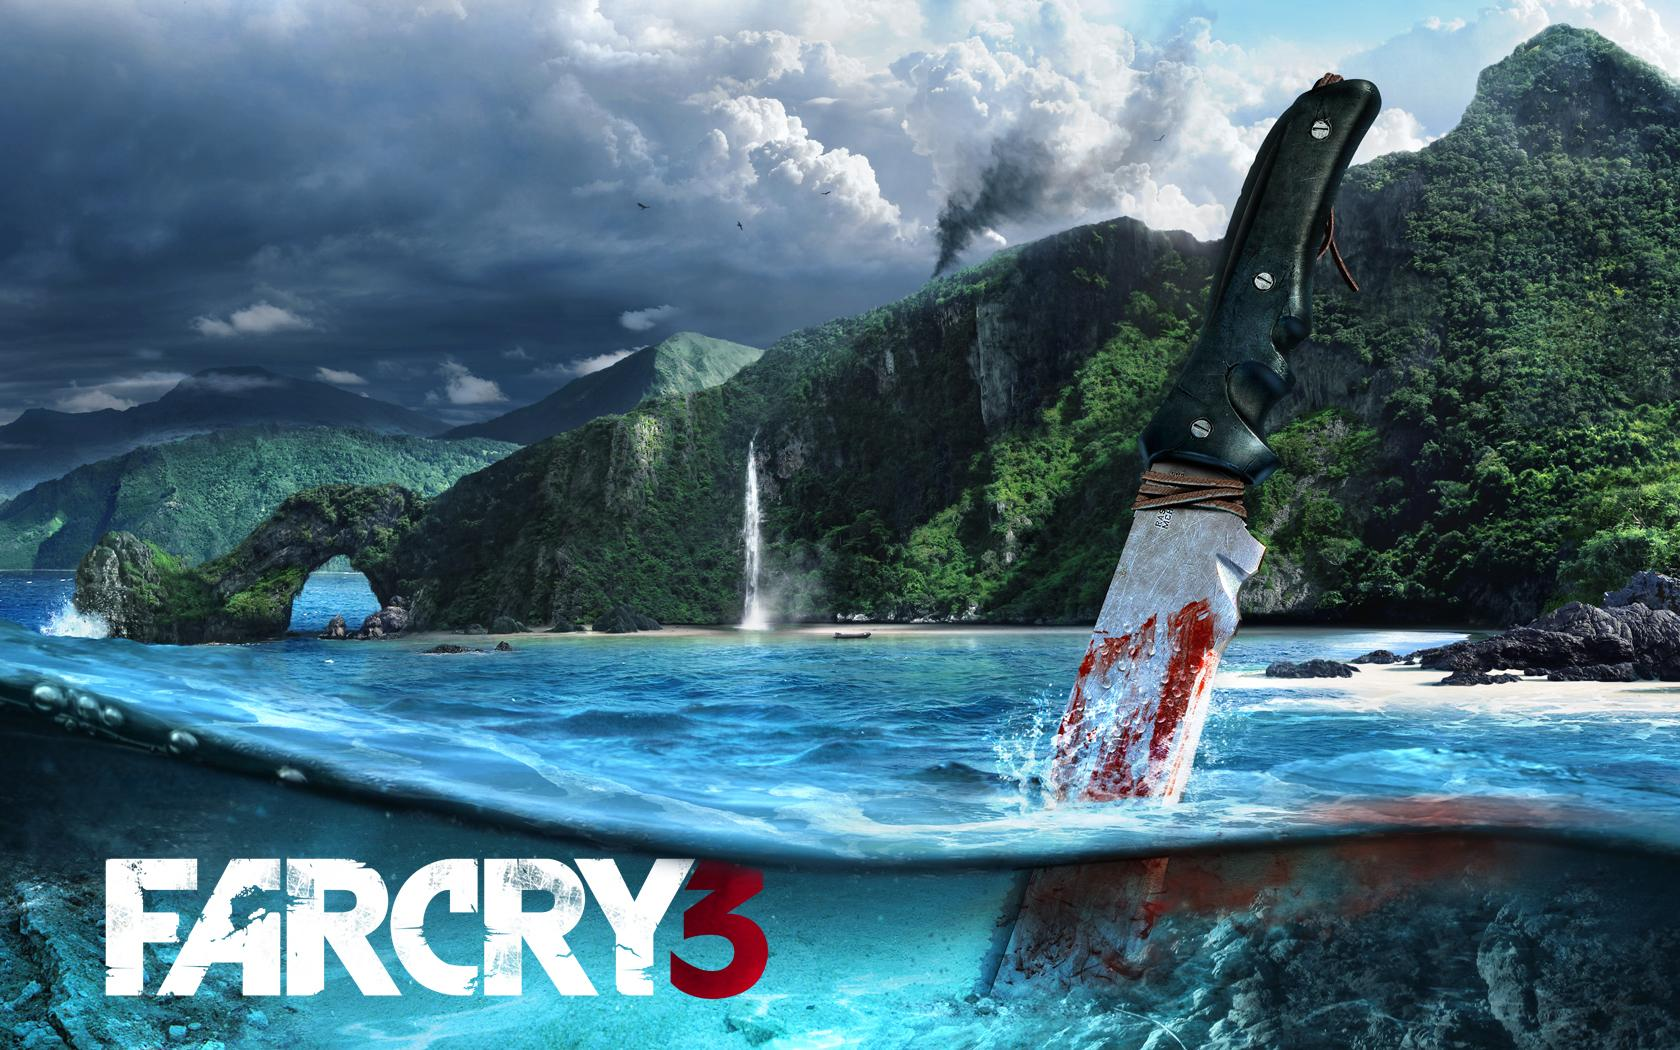 Cool Far Cry 3 Wallpaper And Windows 7 Themepack